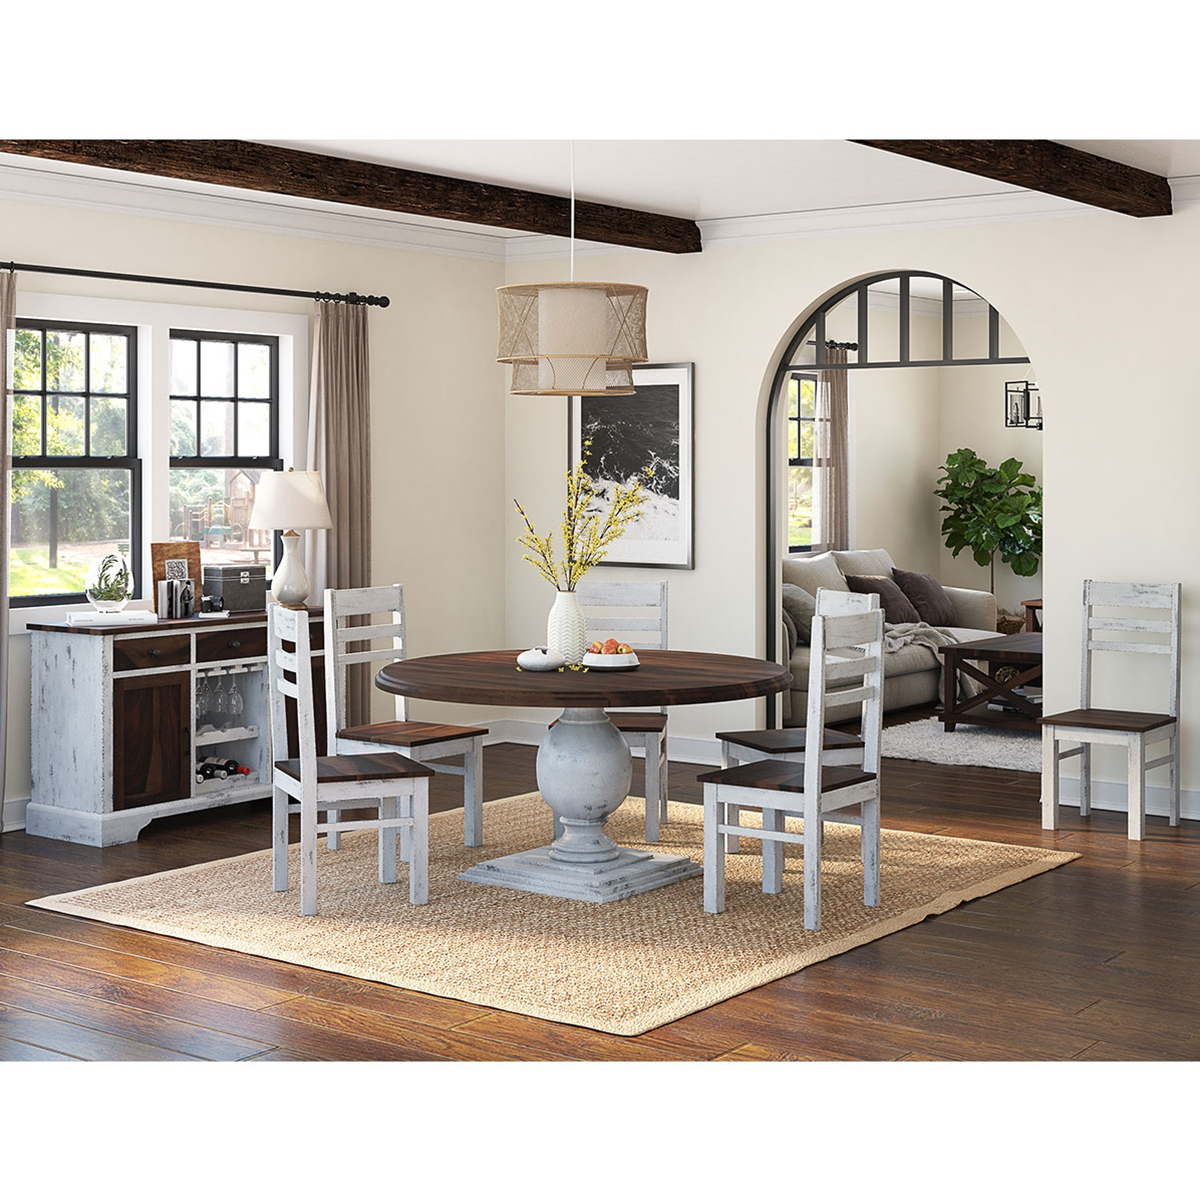 New Dining Room Sets: Illinois Modern Two Tone Solid Wood 10 Piece Round Dining